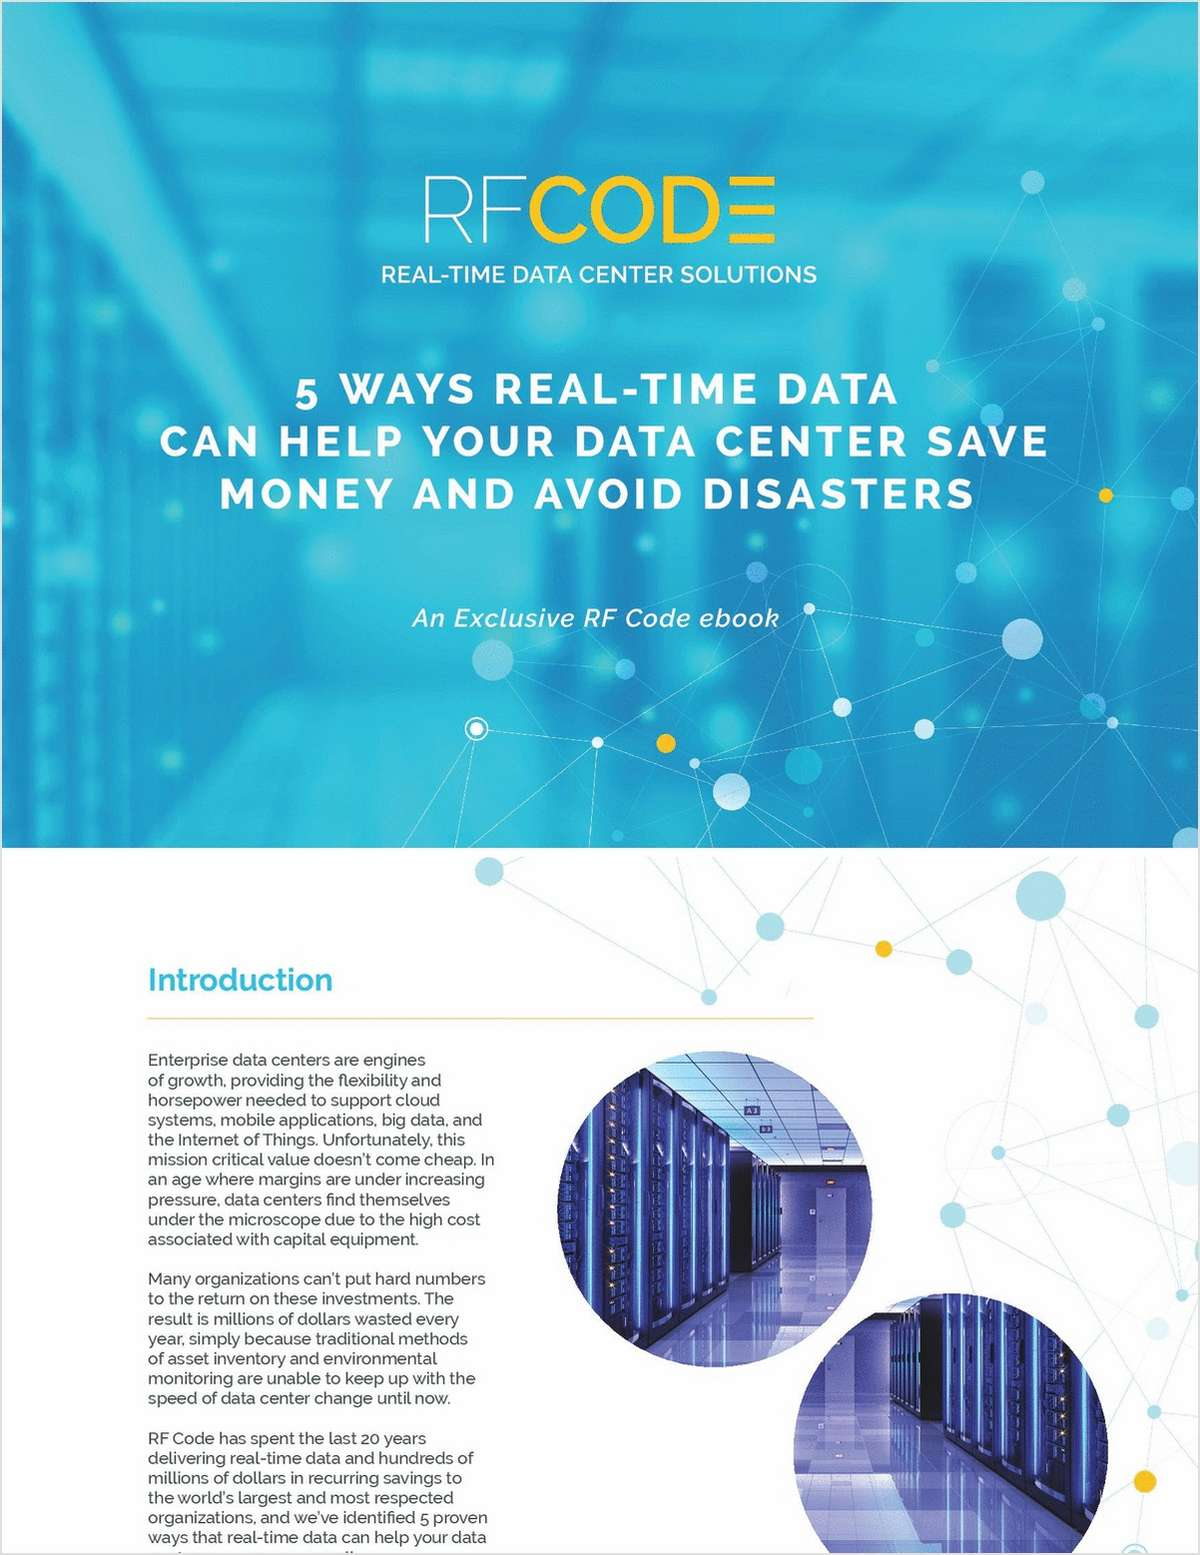 5 Ways Real-Time Data Can Help Your Data Center Save Money and Avoid Disasters